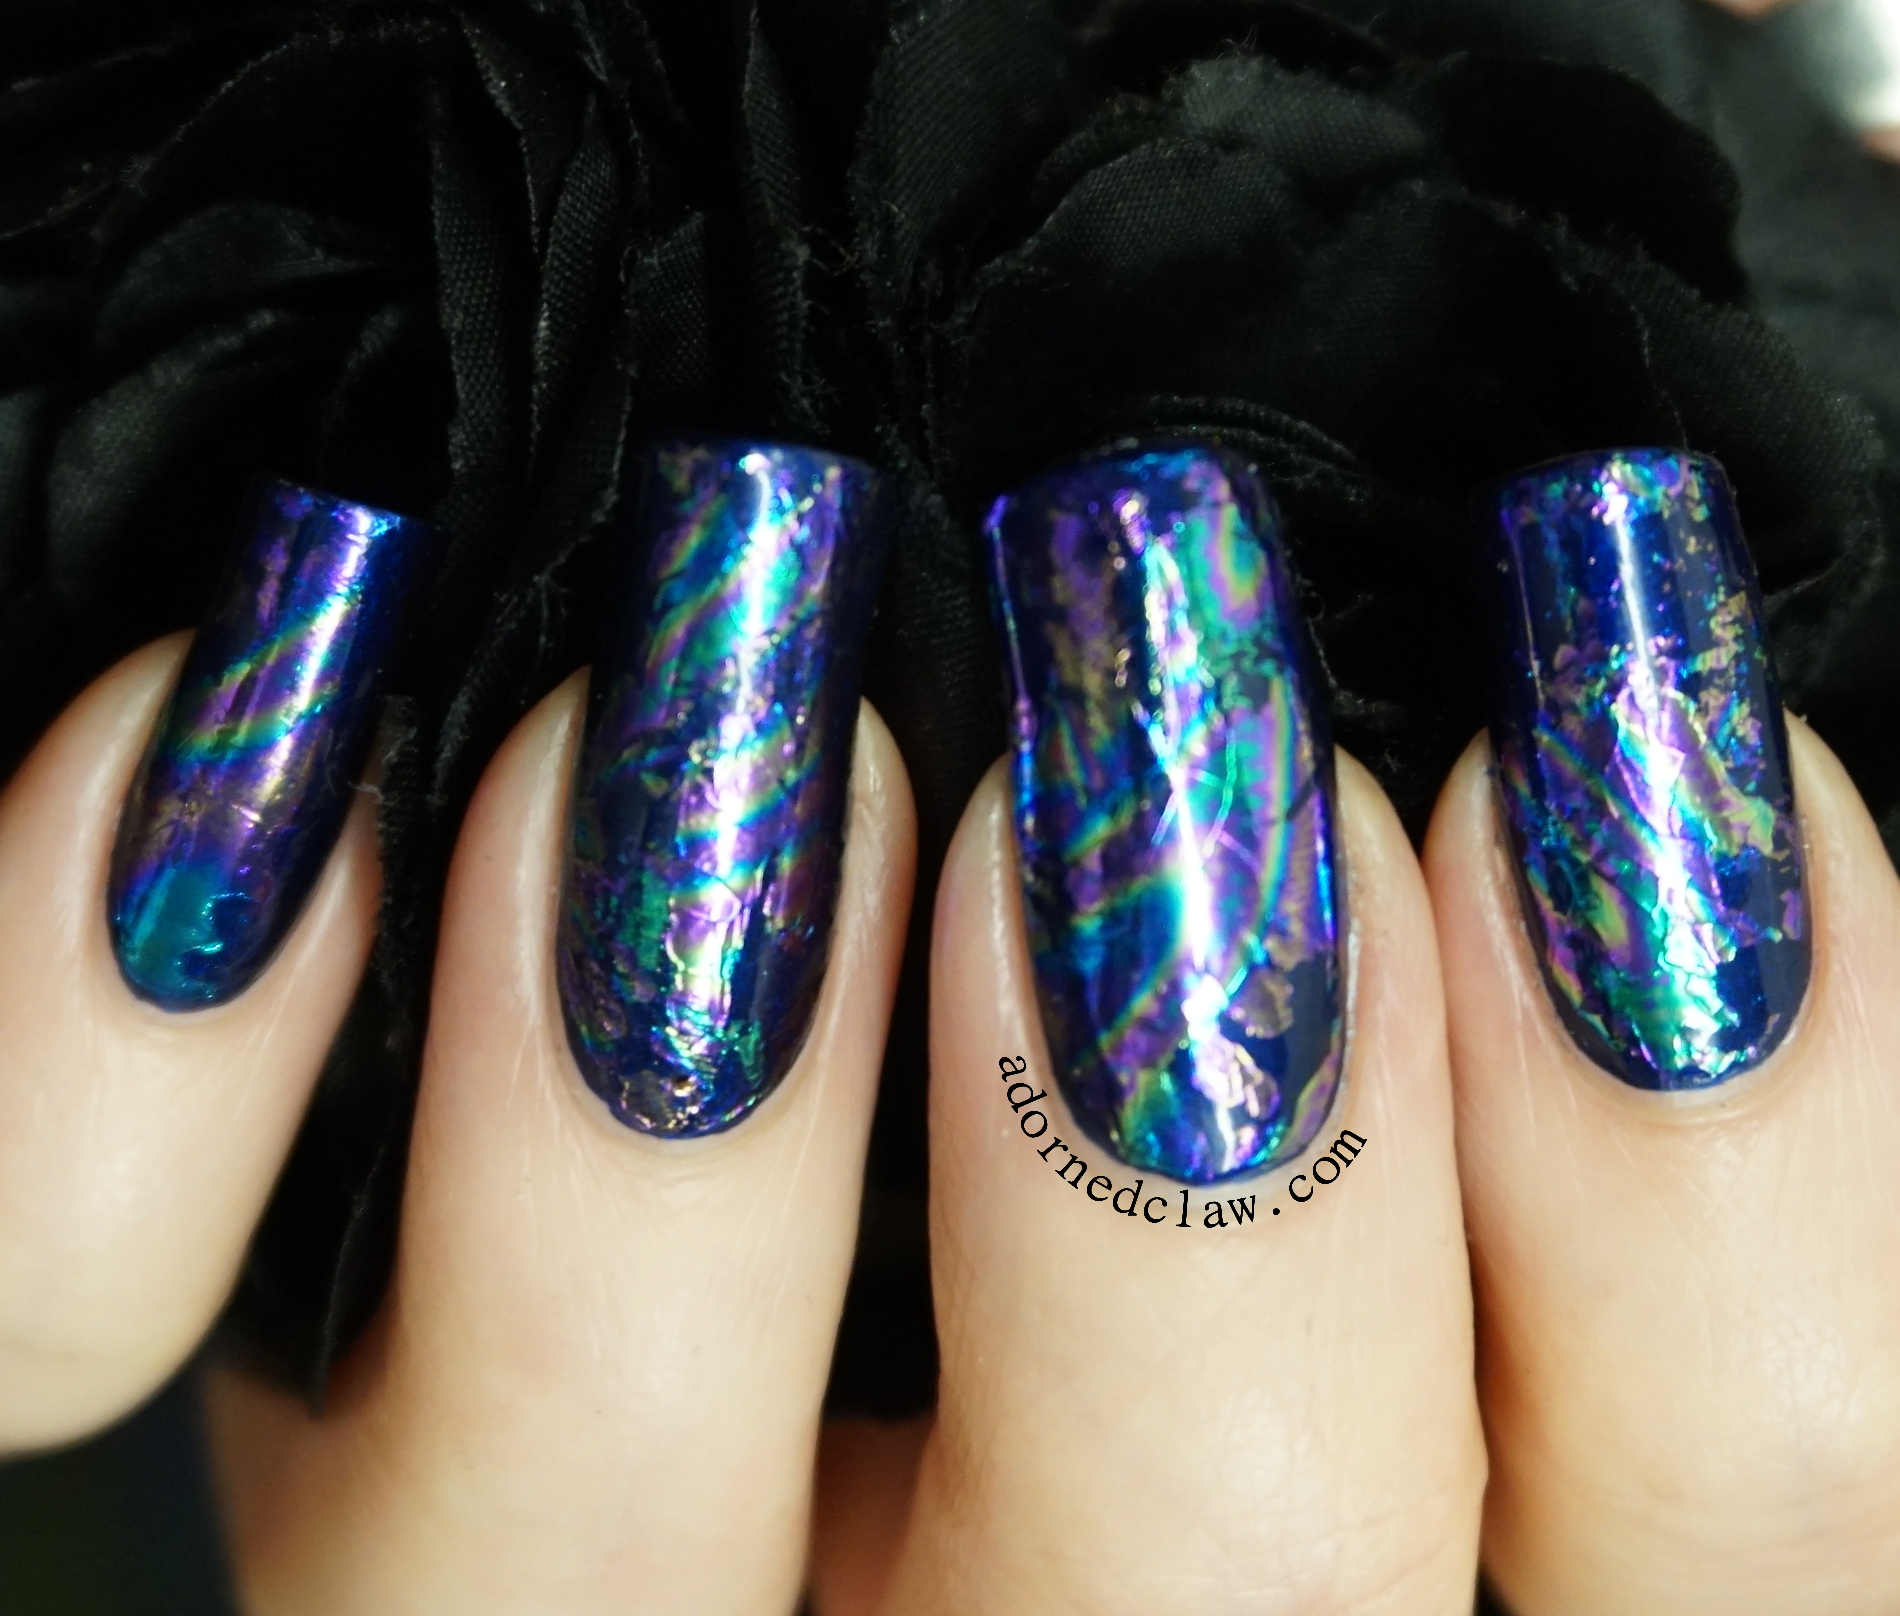 Nail Art | The Adorned Claw